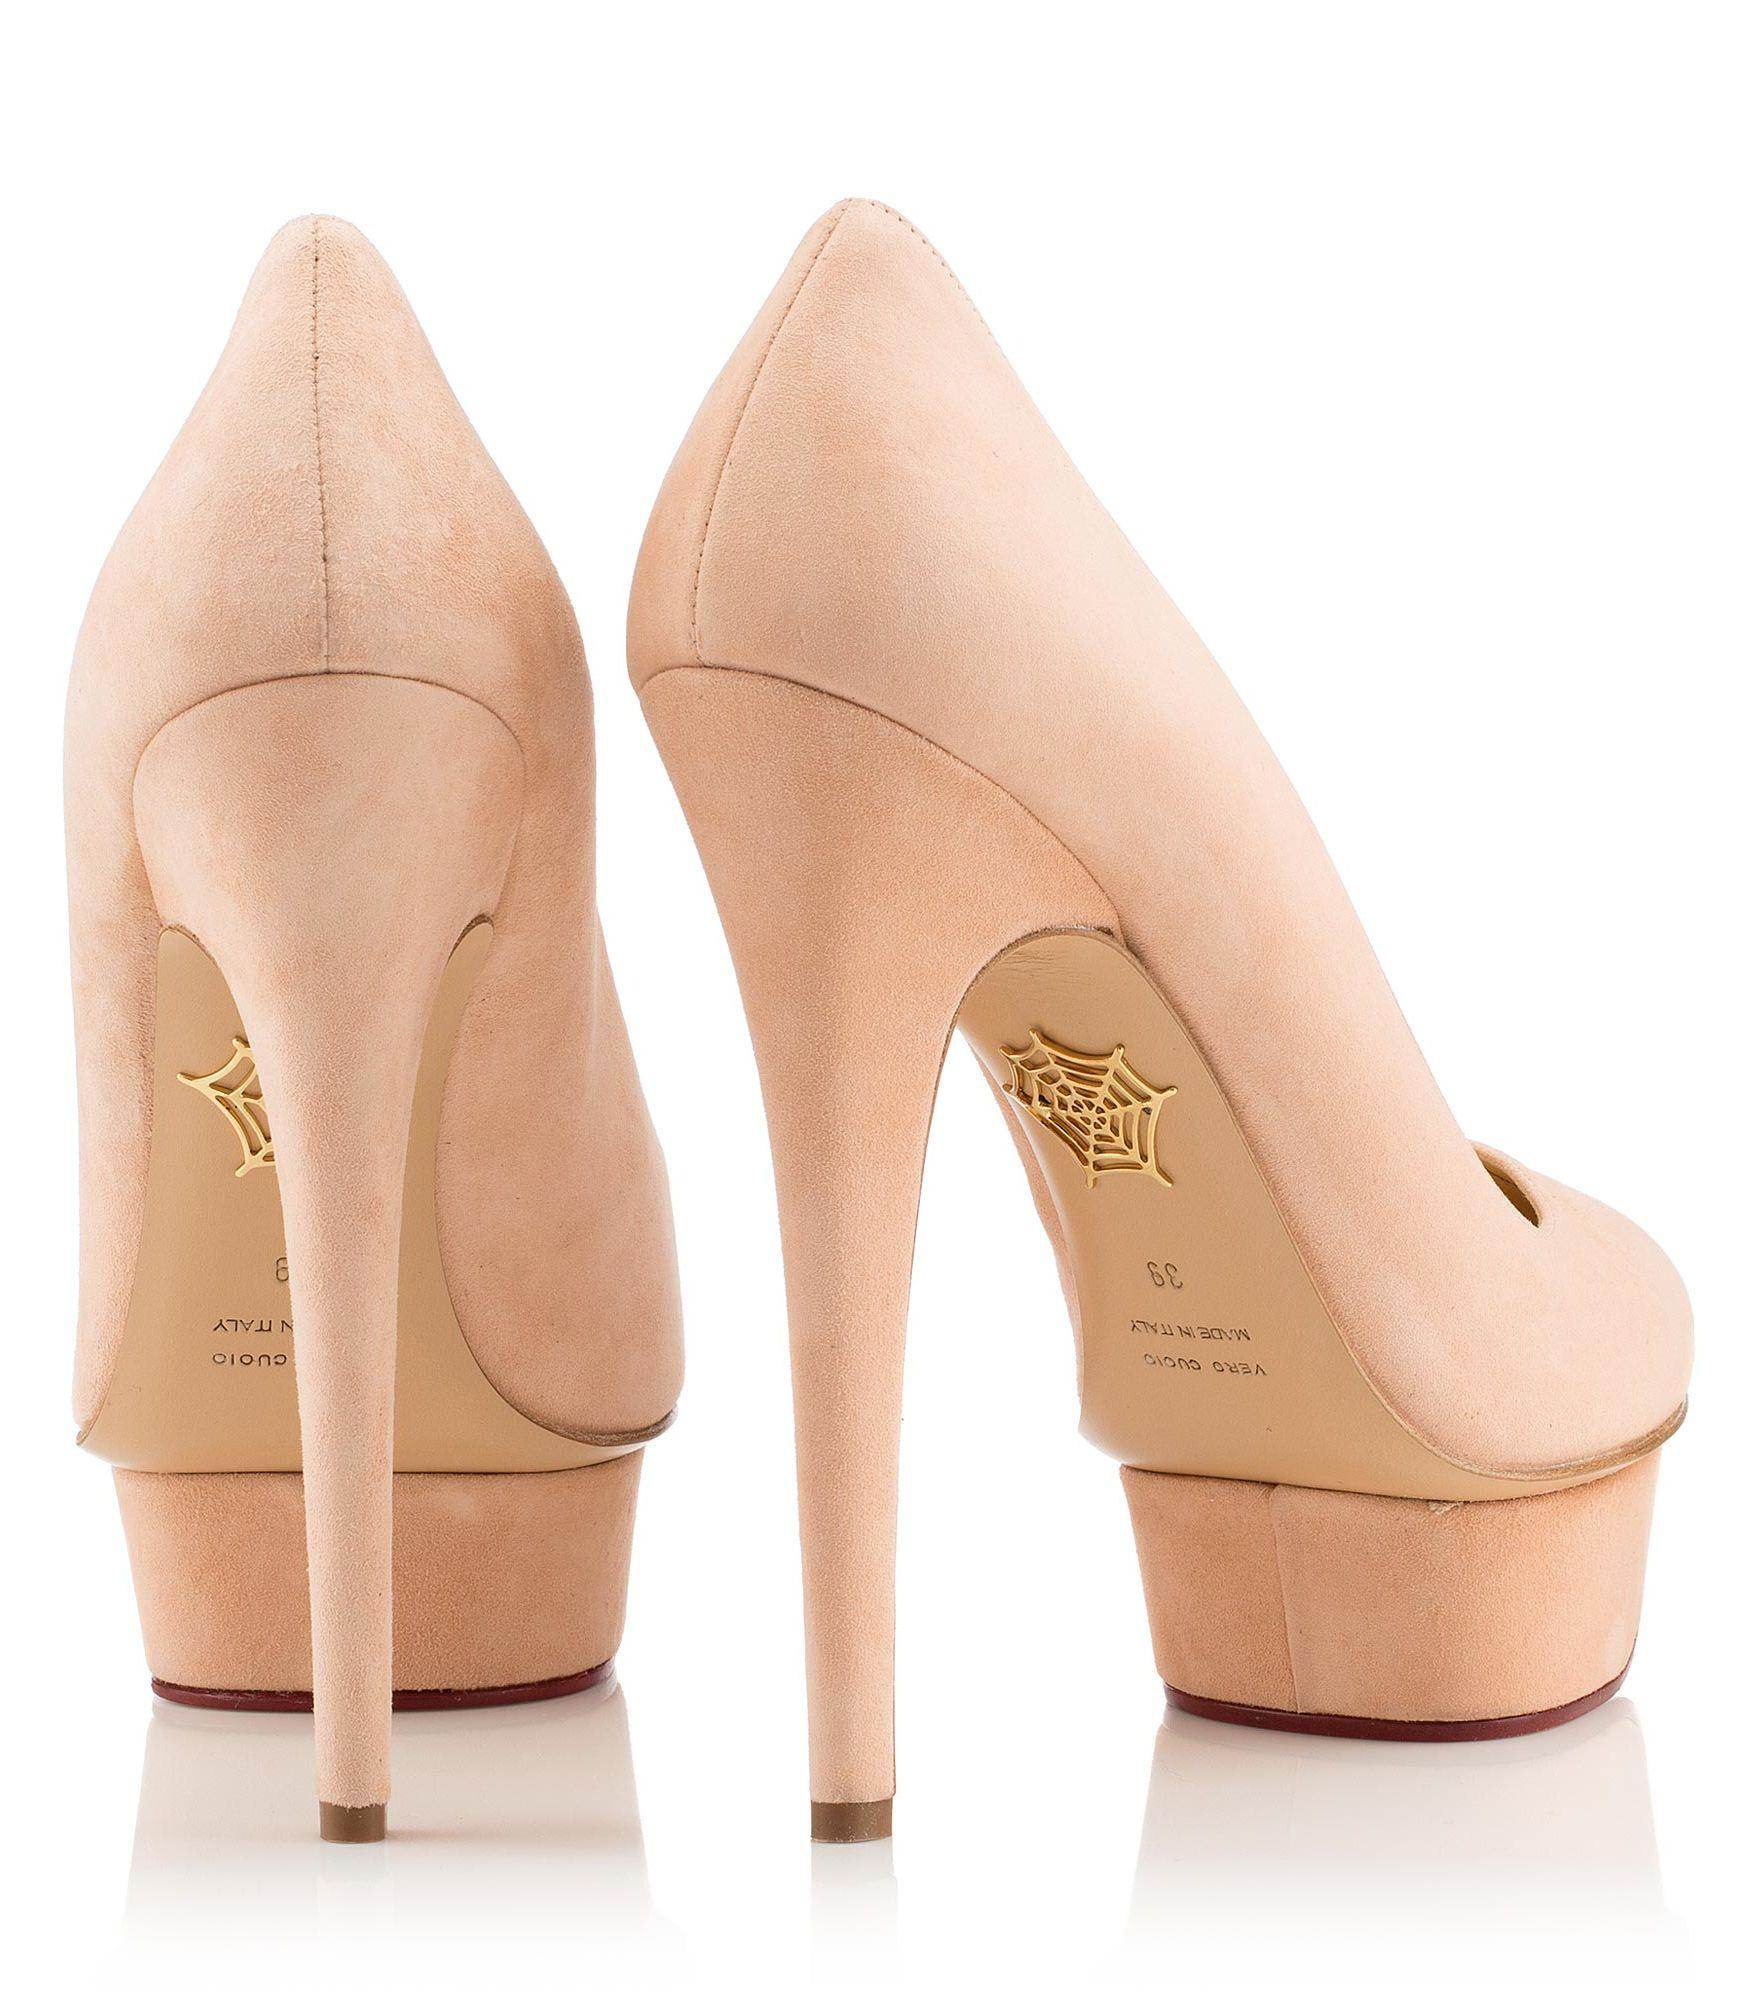 5dec1e8c481 795 New Charlotte Olympia Dolly Platform Pumps